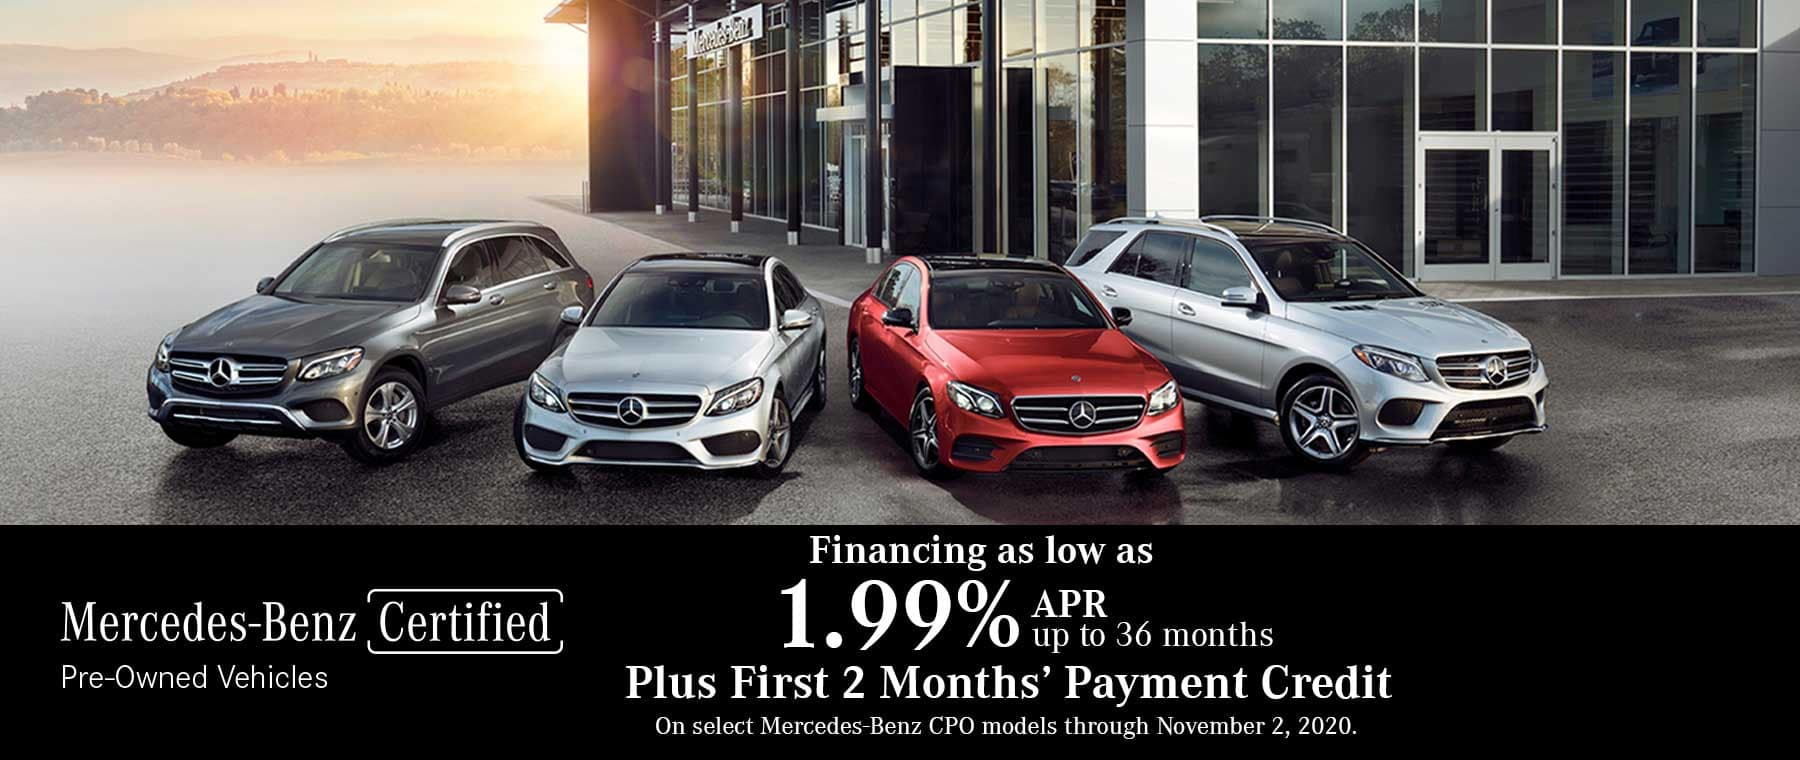 Mercedes-Benz Certified Pre-Owned Sales Event at Keenan Motors